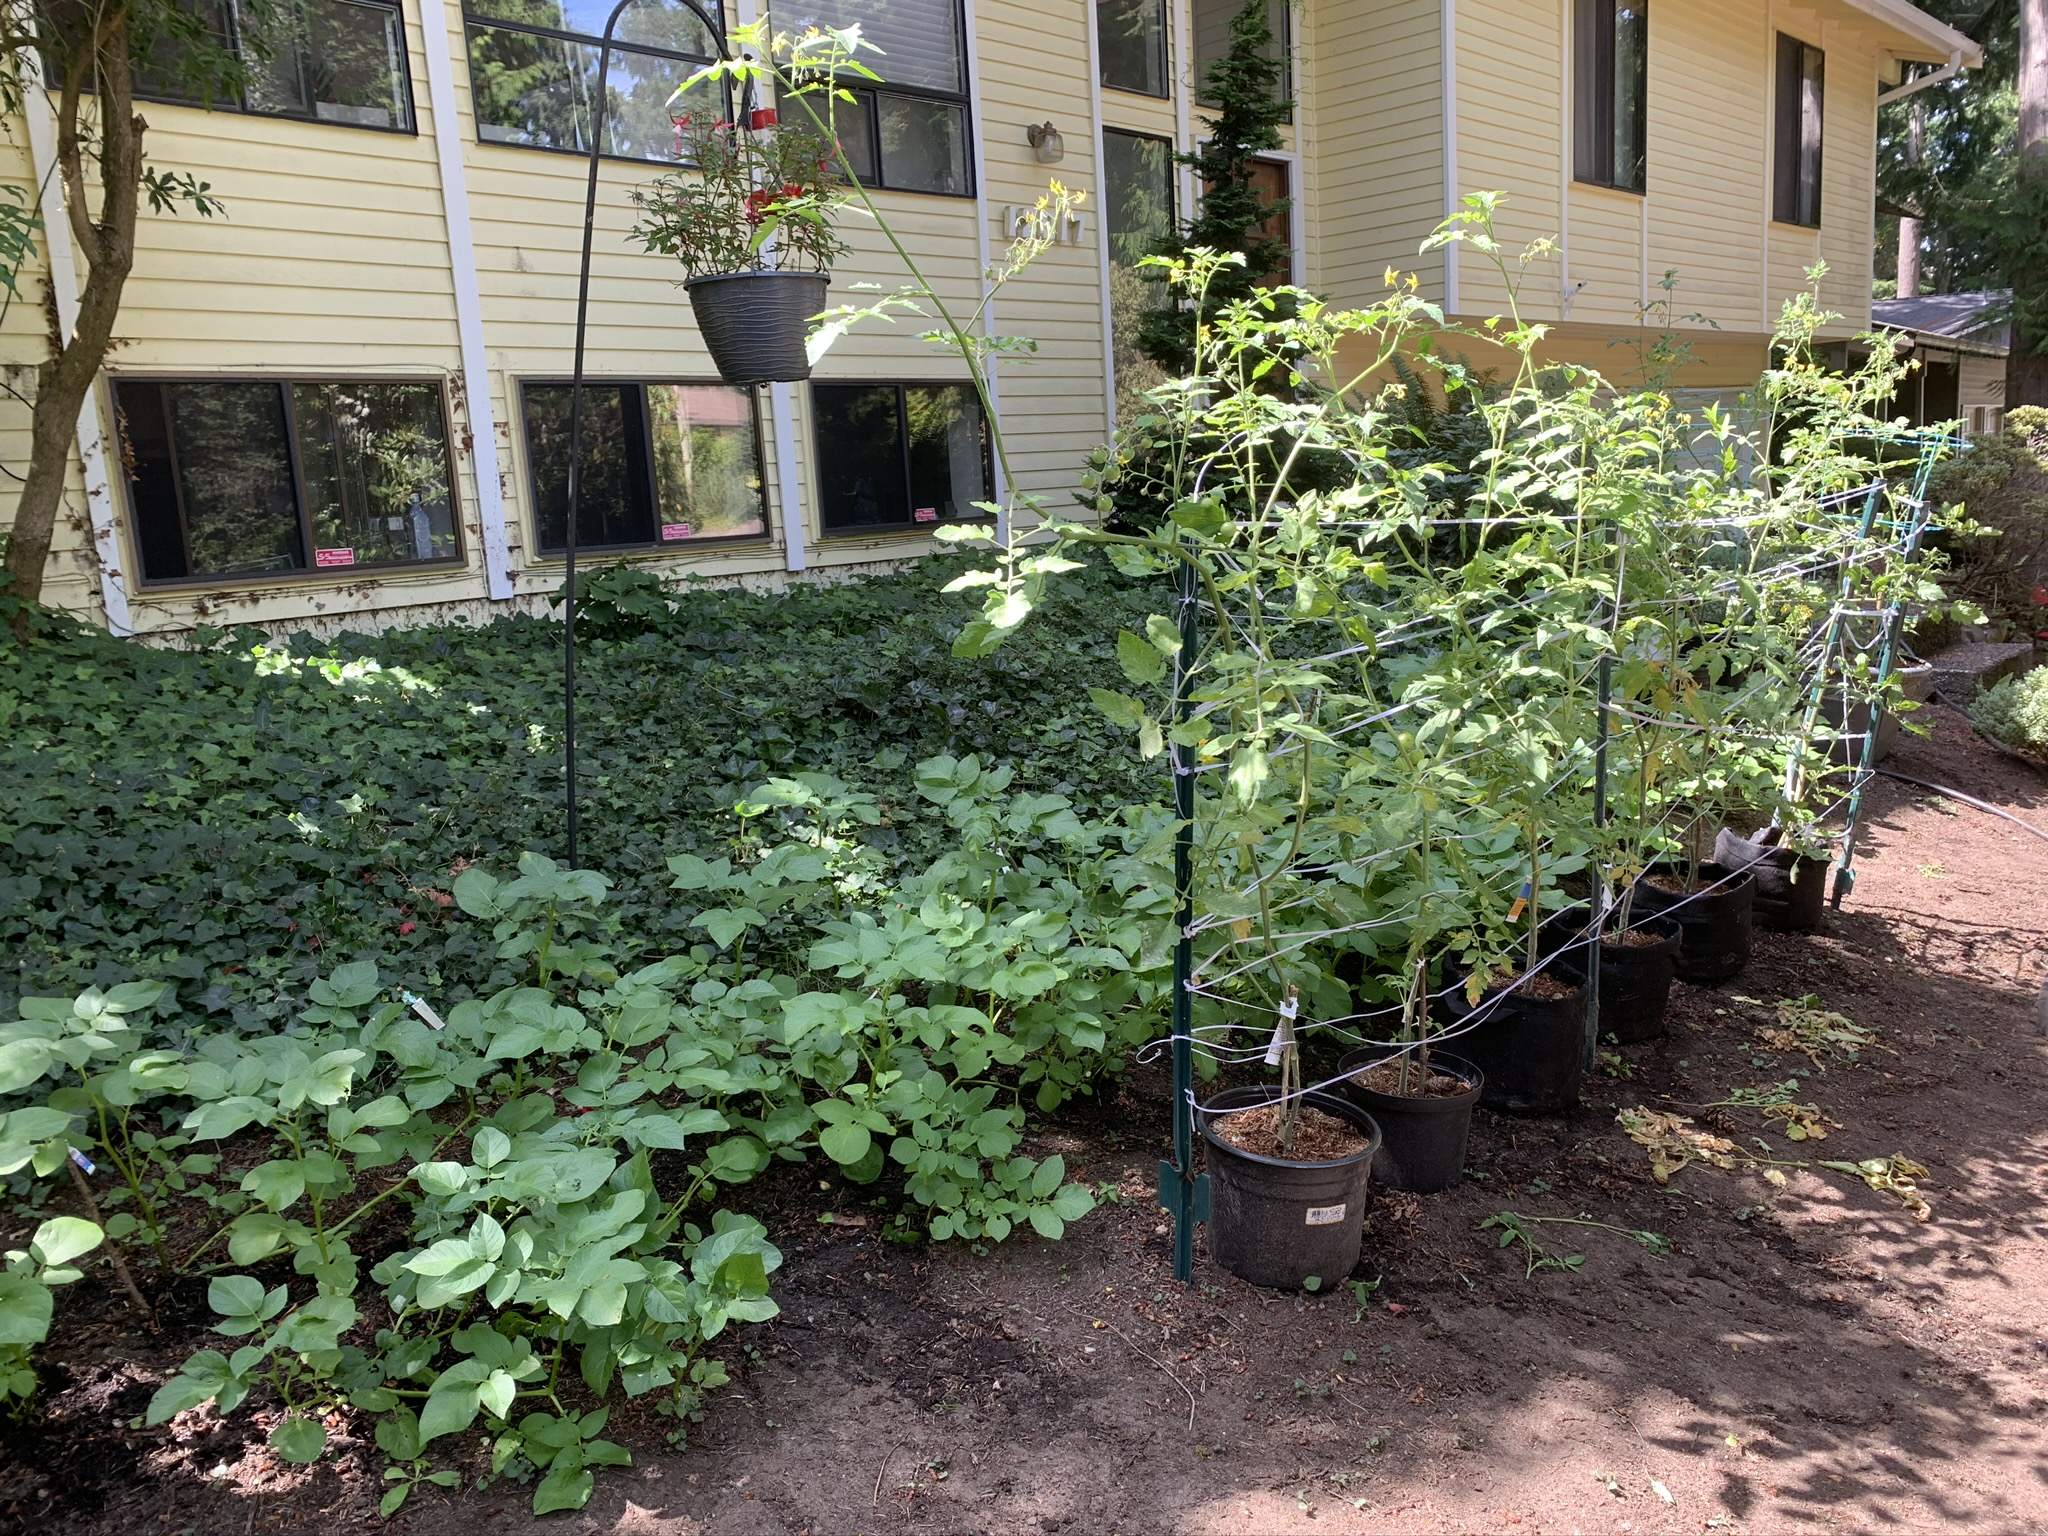 DIY Garden 2020 - Partial Shade PNW Zone 8b/9a - 3 Months ...